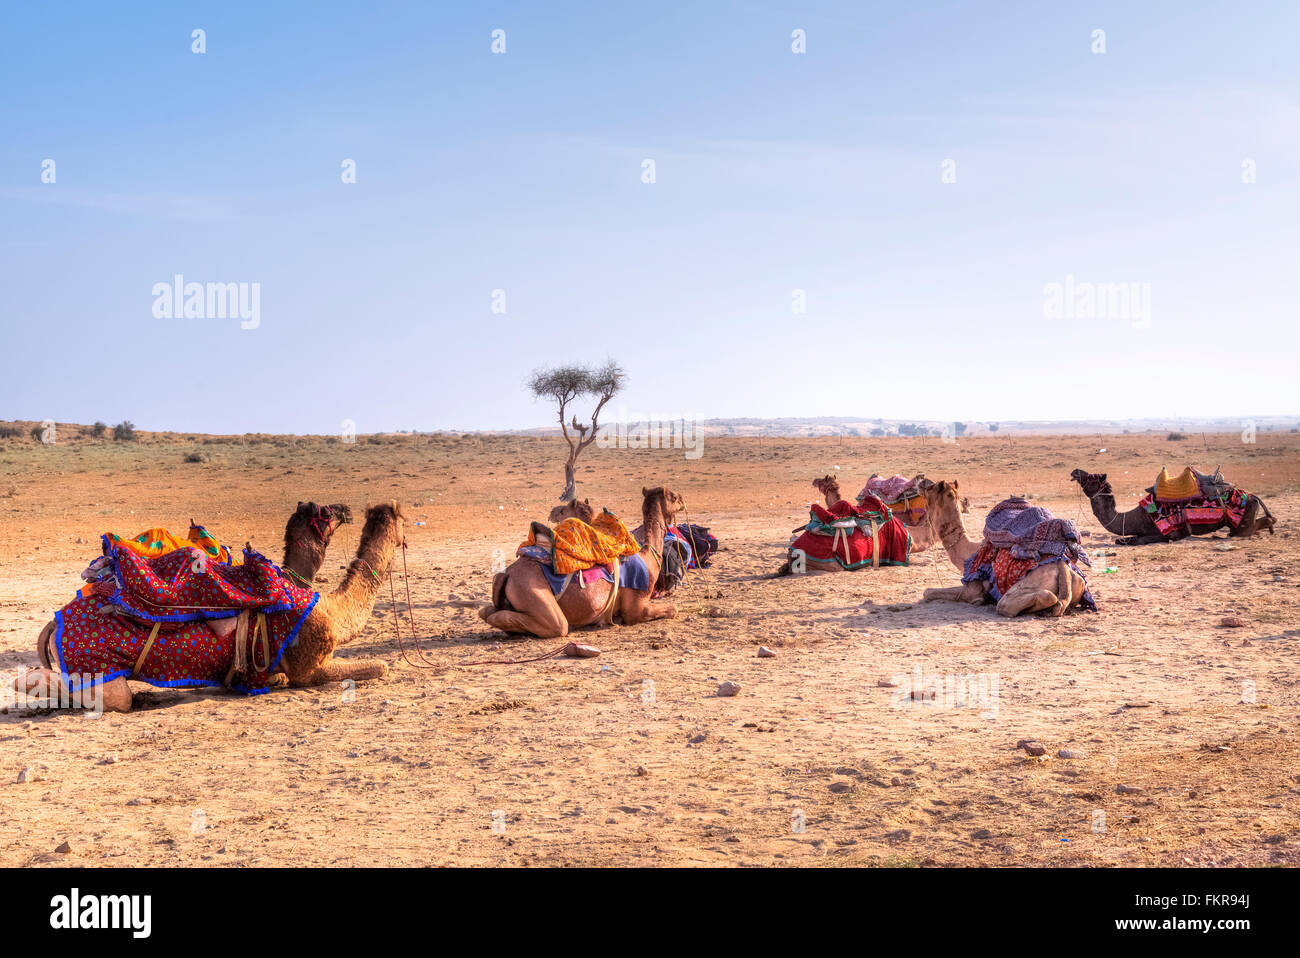 camels of Nomadic people in the Thar desert, Rajasthan, India - Stock Image